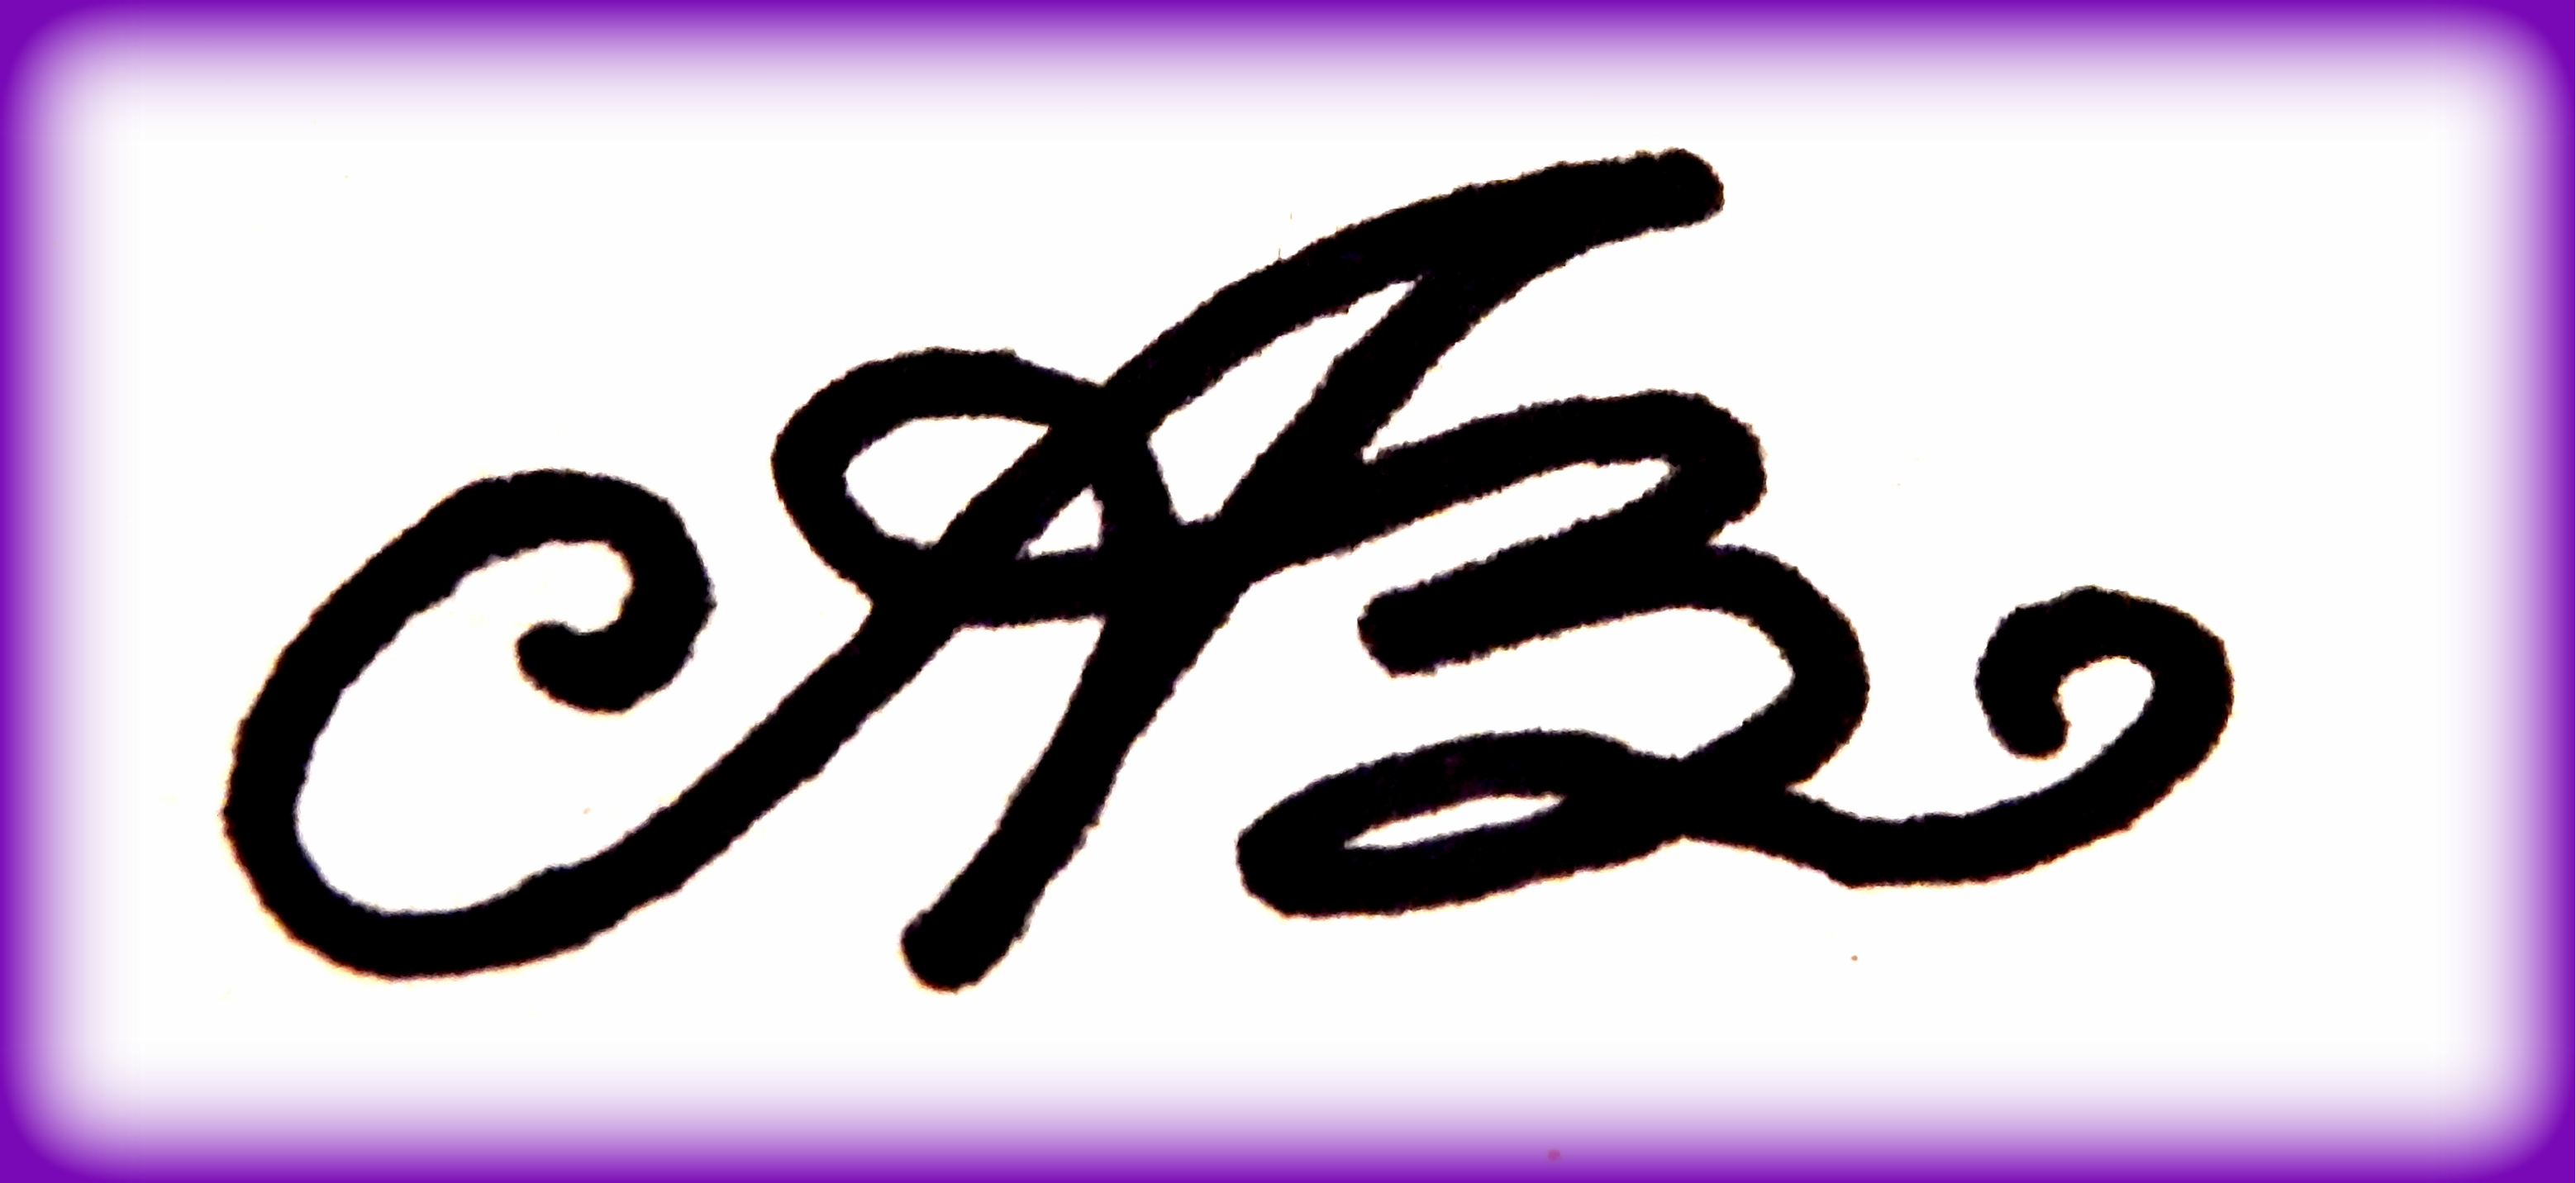 April Barci's Signature